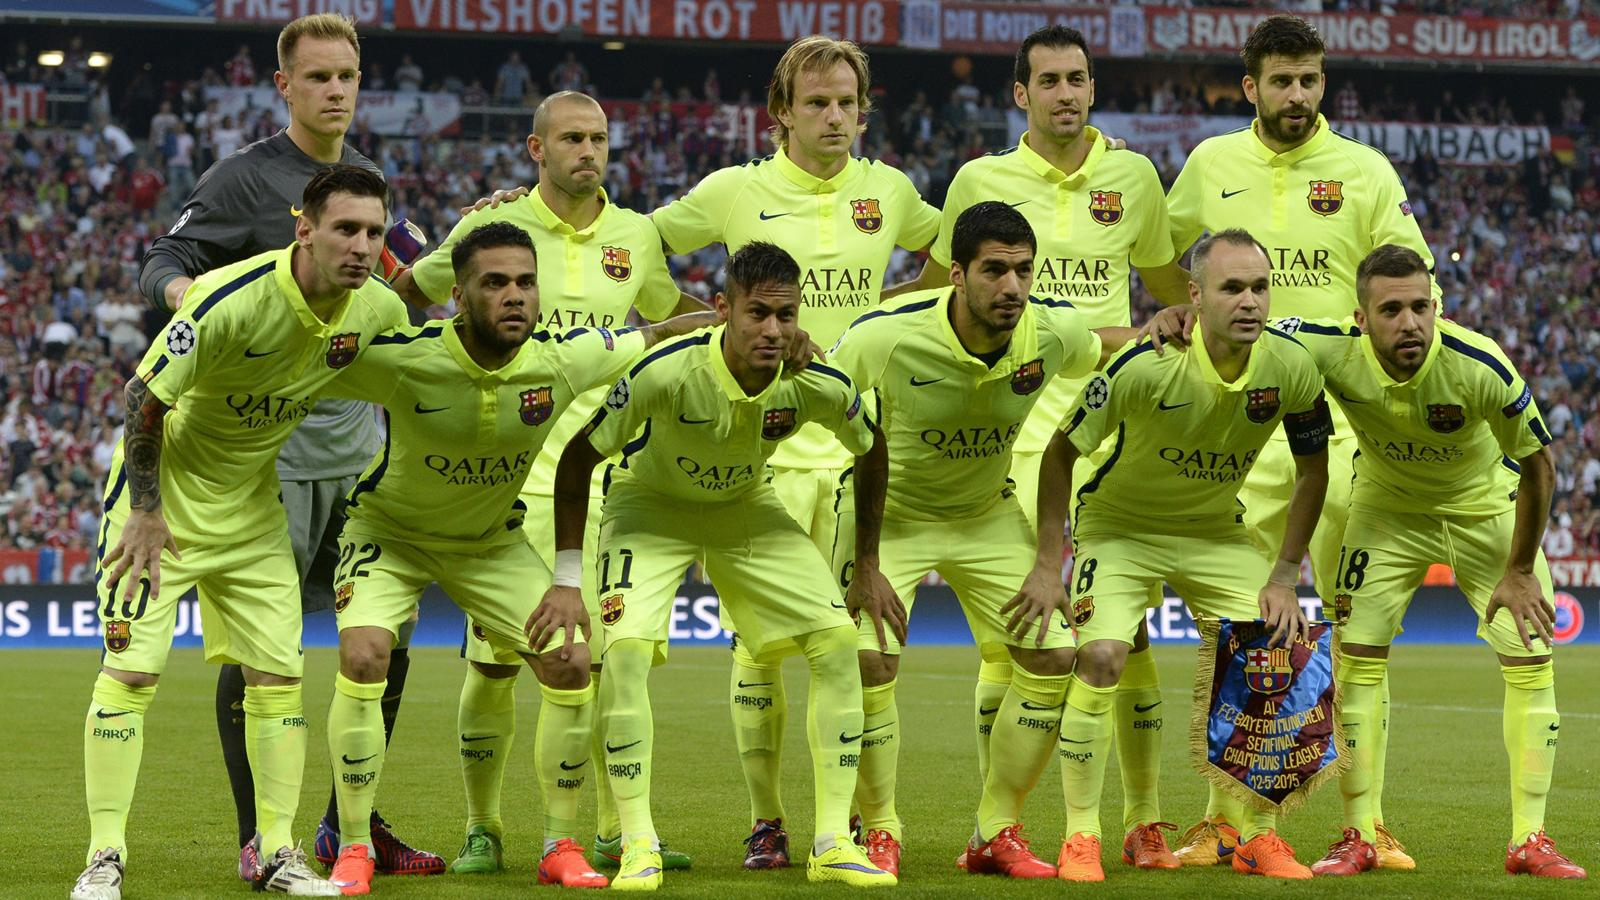 In-depth: Is this the greatest Barcelona side in history? - Champions League 2014-2015 ...